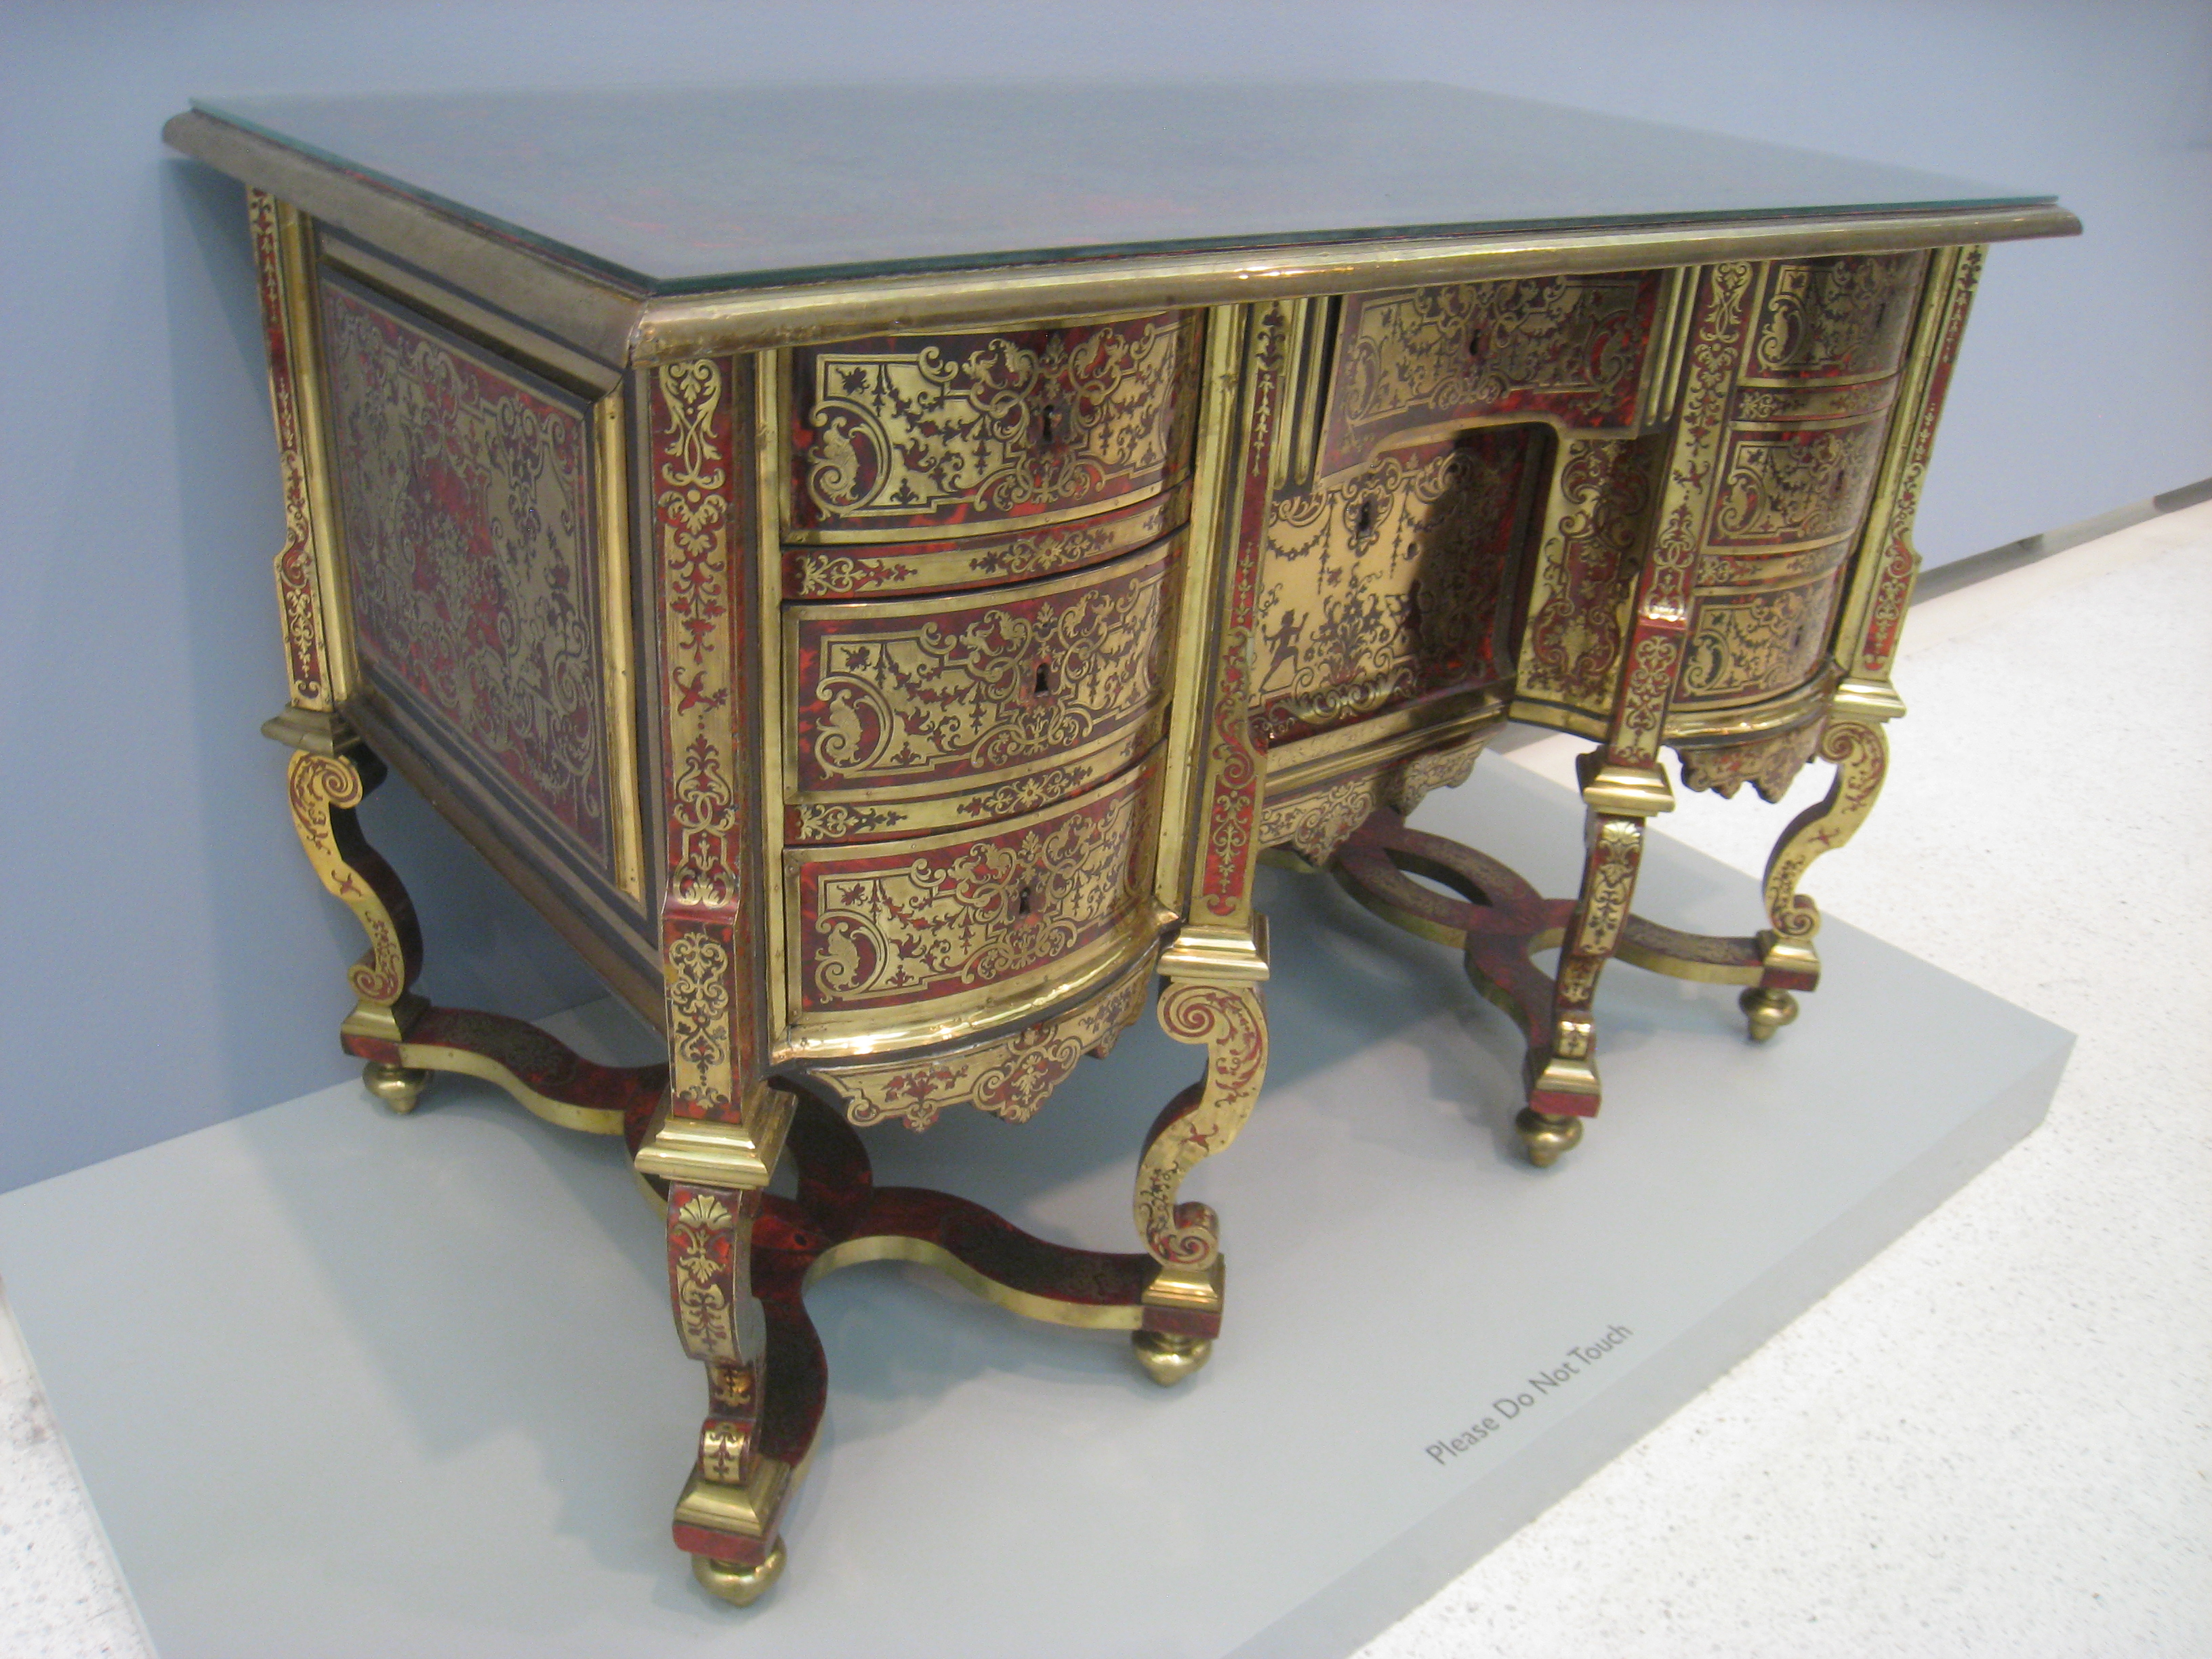 Bureau Meuble File:desk, Andre-charles Boulle Or Circle, C. 1690-1700